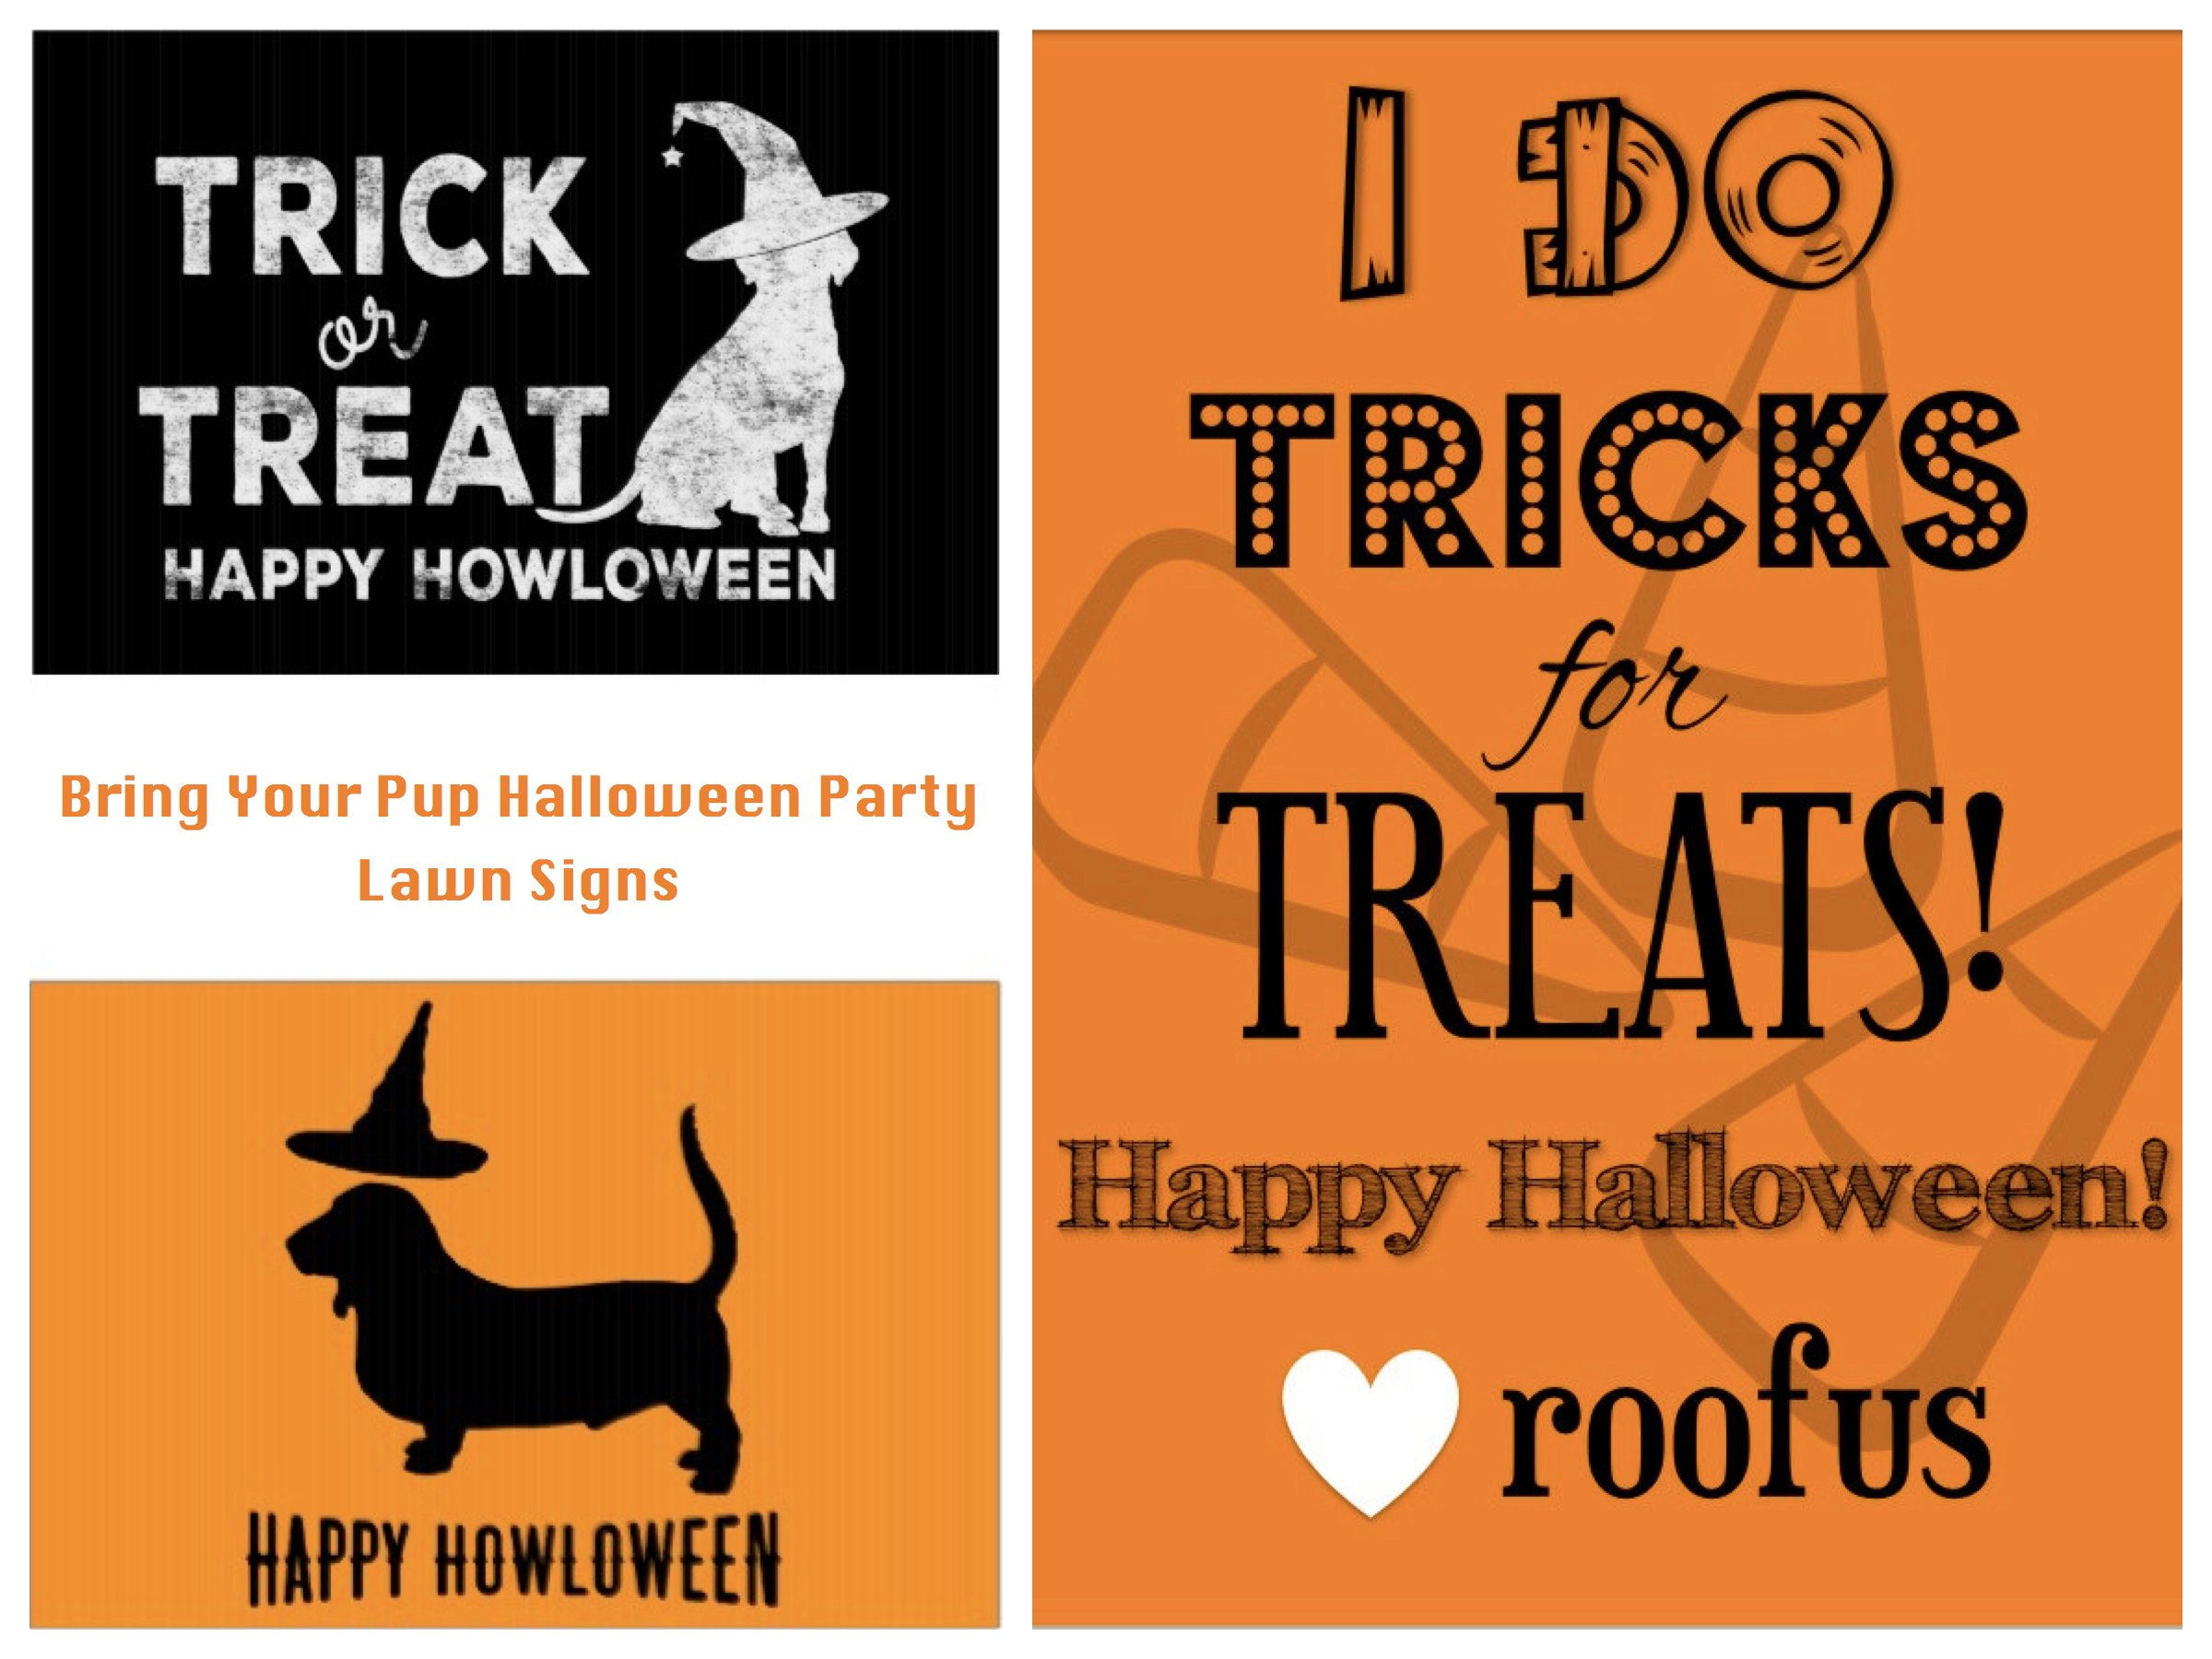 Bring Your Pup Halloween Party Lawn Signs